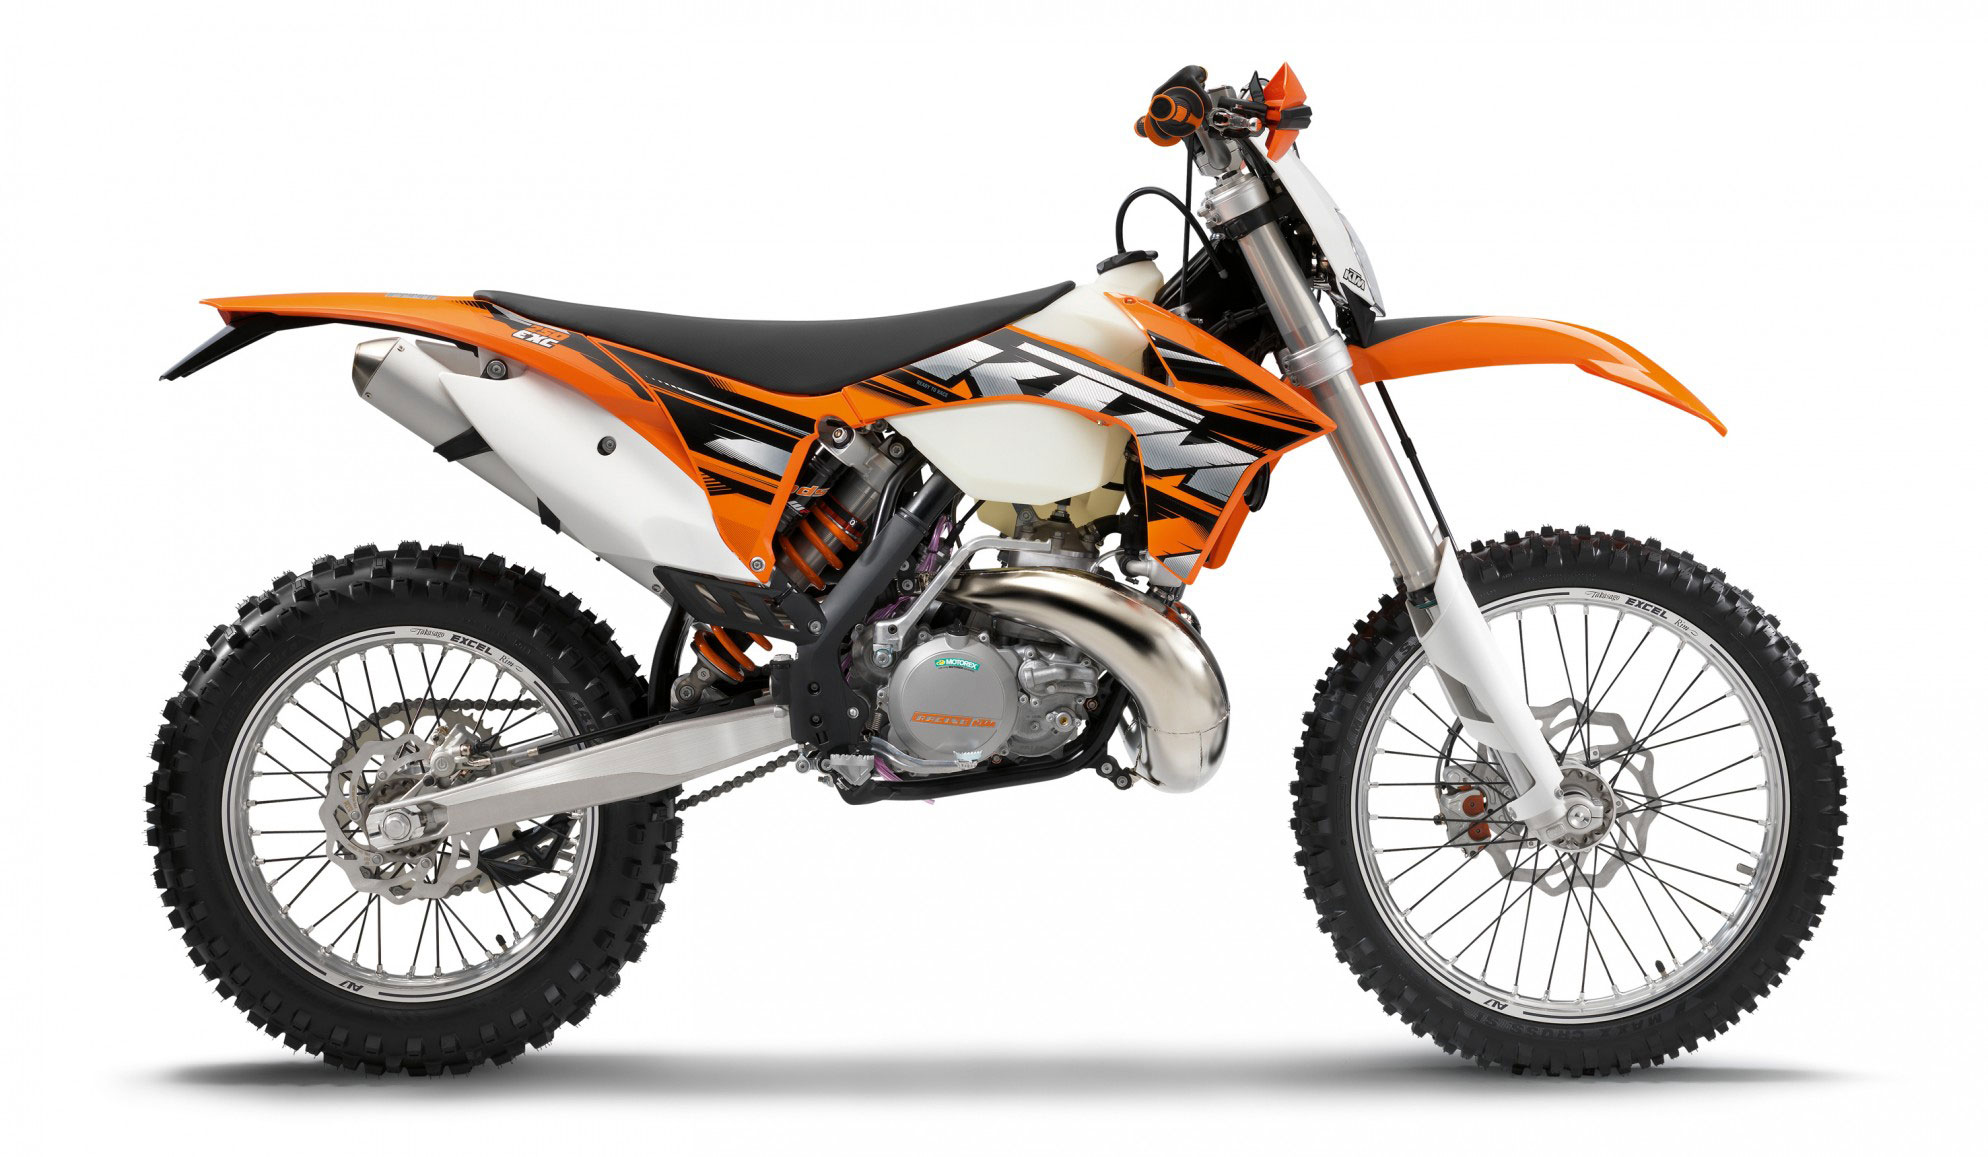 KTM working on a new 250cc bike